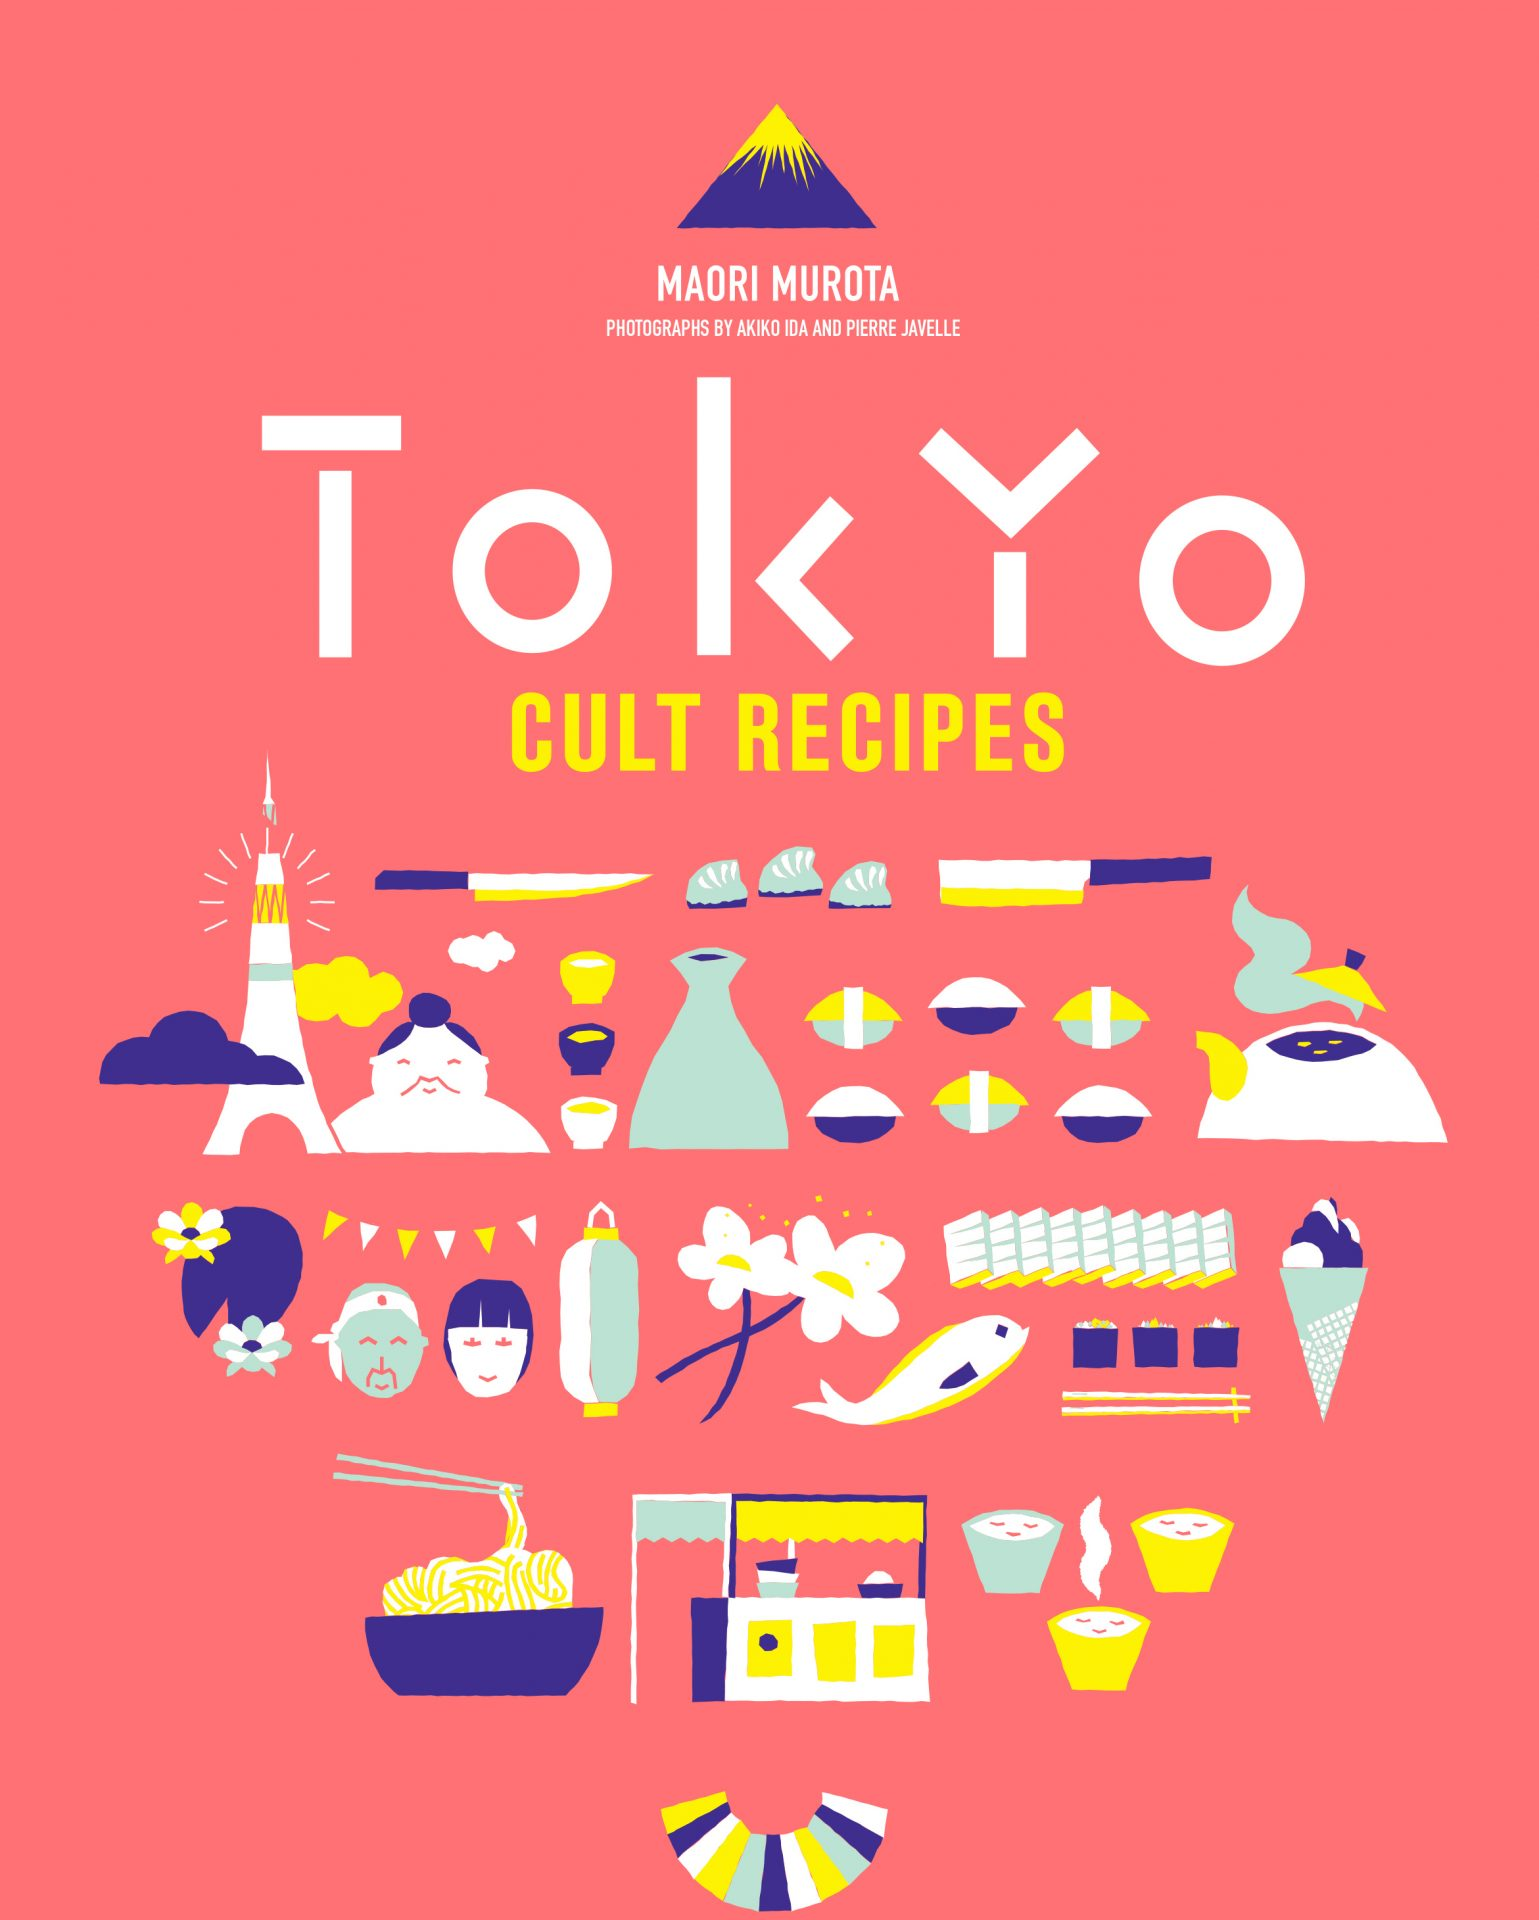 Tokyo Cult Recipes by Maori Murota, Good Egg's pick of the month.